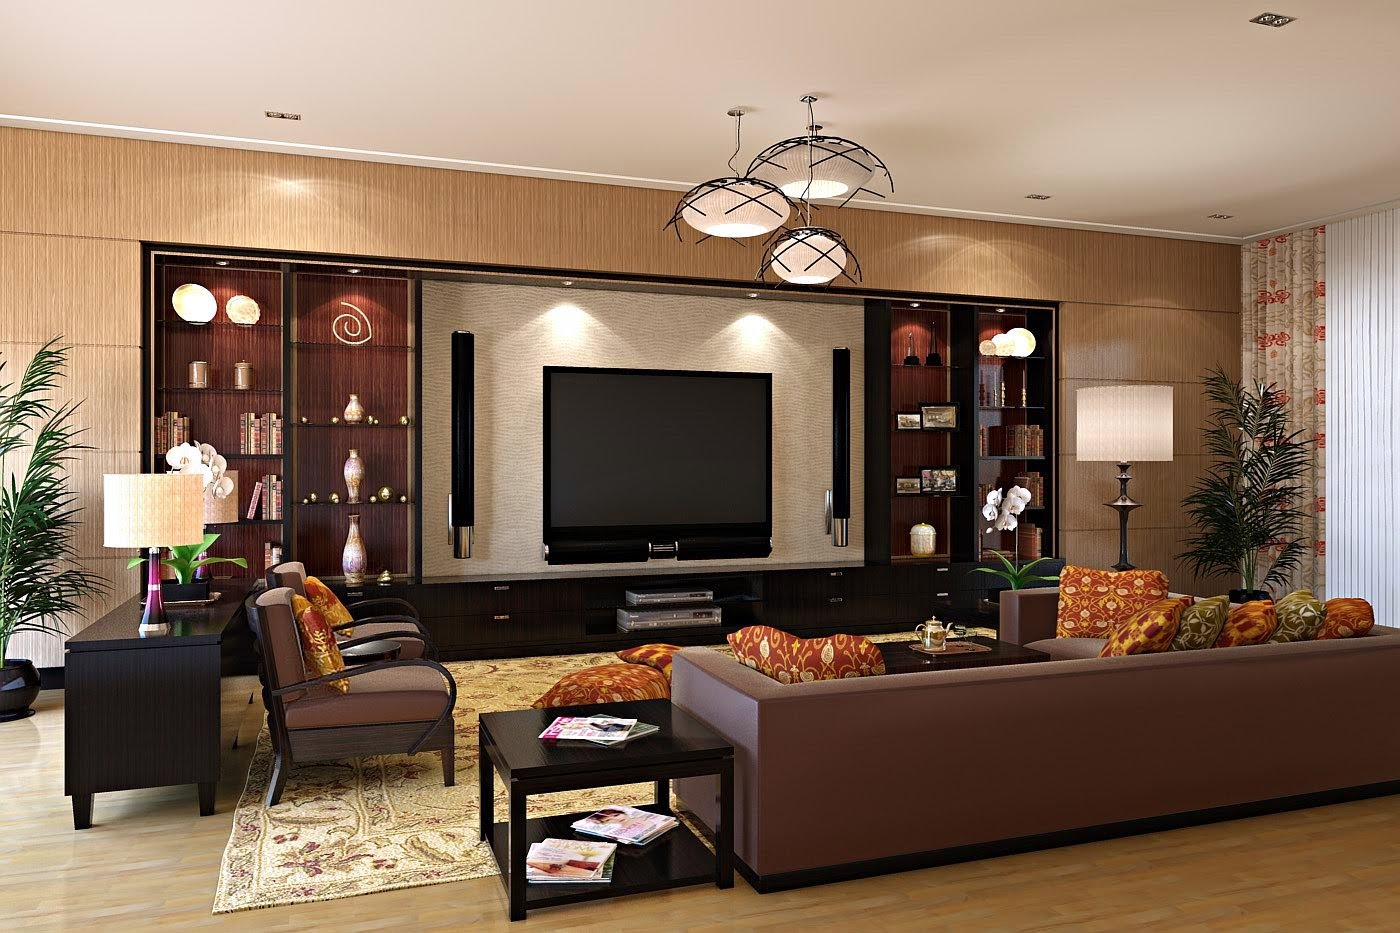 20 Modern TV Unit Design Ideas For Bedroom amp Living Room  : tv unit designs tv cabinet design tv wall unit design lcd panel design lcd unit design tv unit design for hall lobby from youmeandtrends.com size 1400 x 933 jpeg 250kB